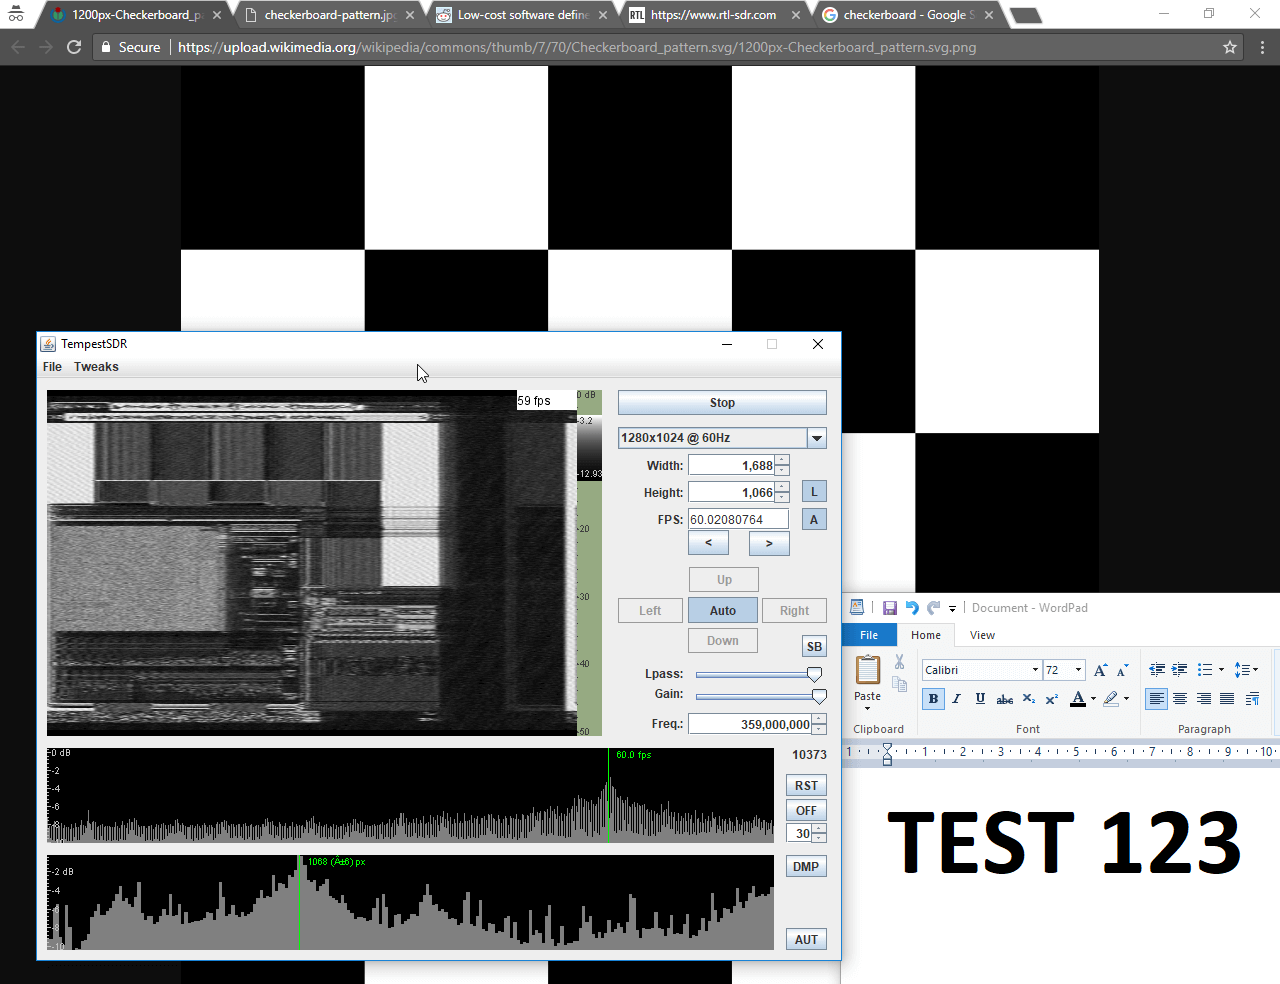 TempestSDR: An SDR tool for Eavesdropping on Computer